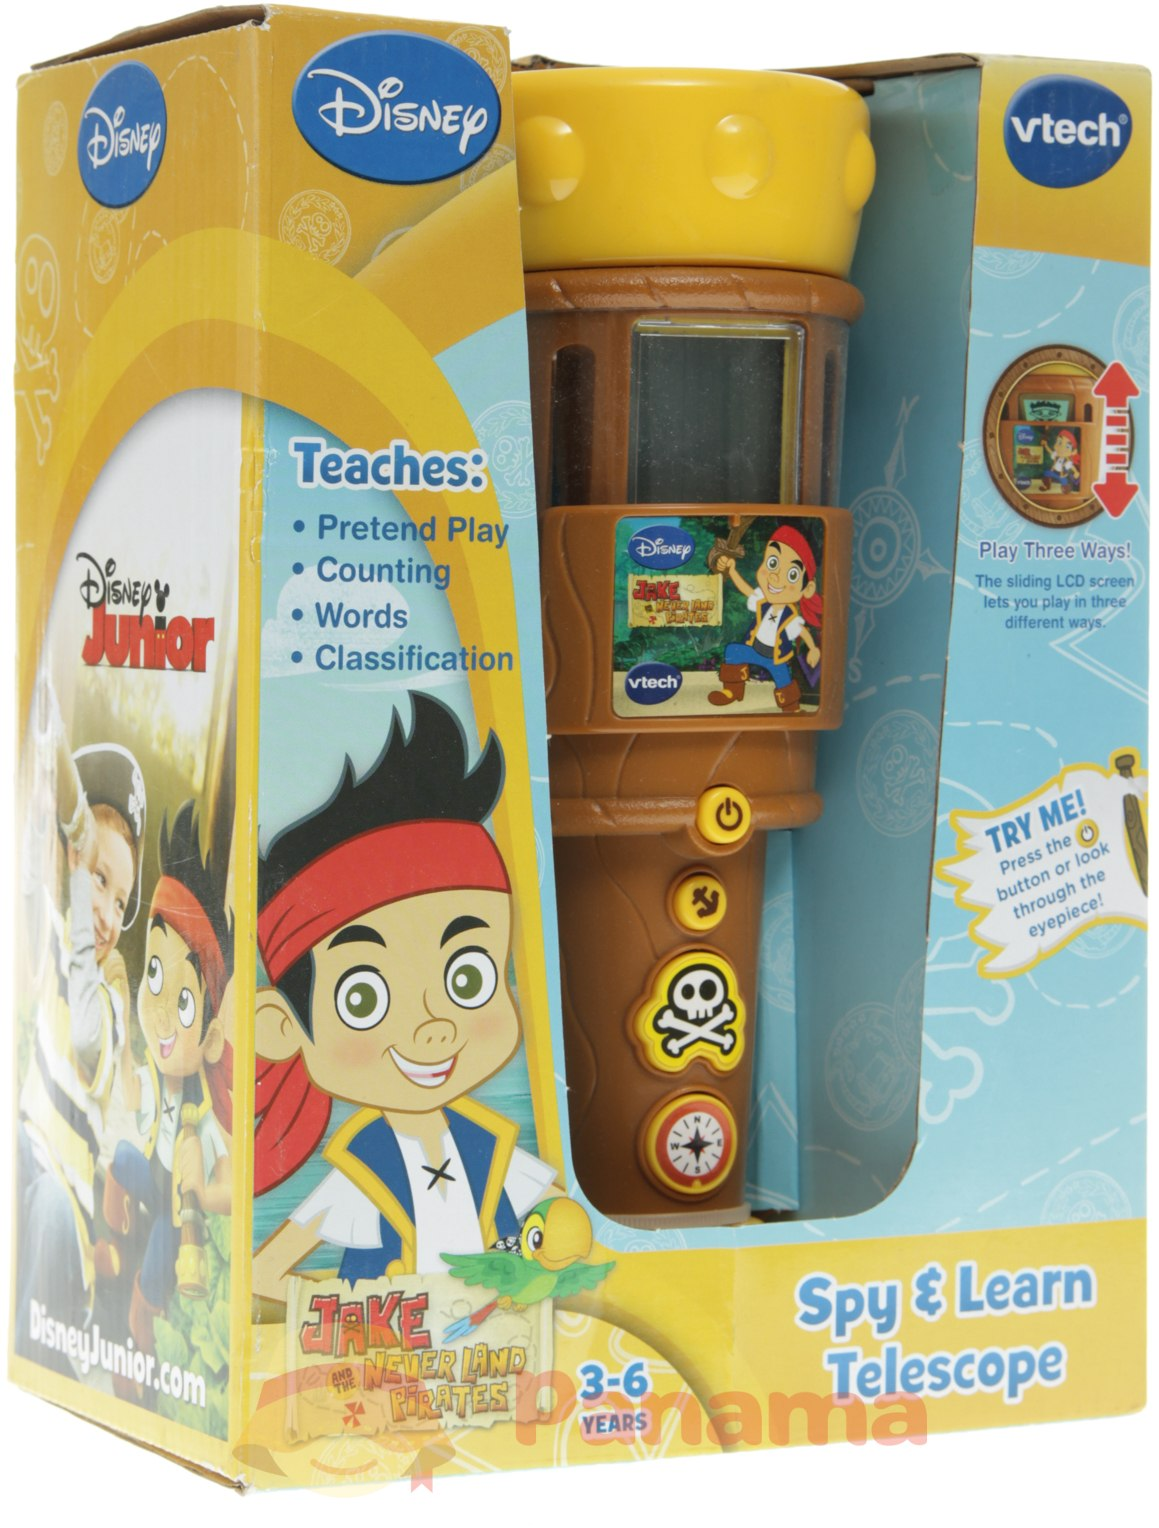 VTech Jake and the Never Land Pirates Spy and Learn ...